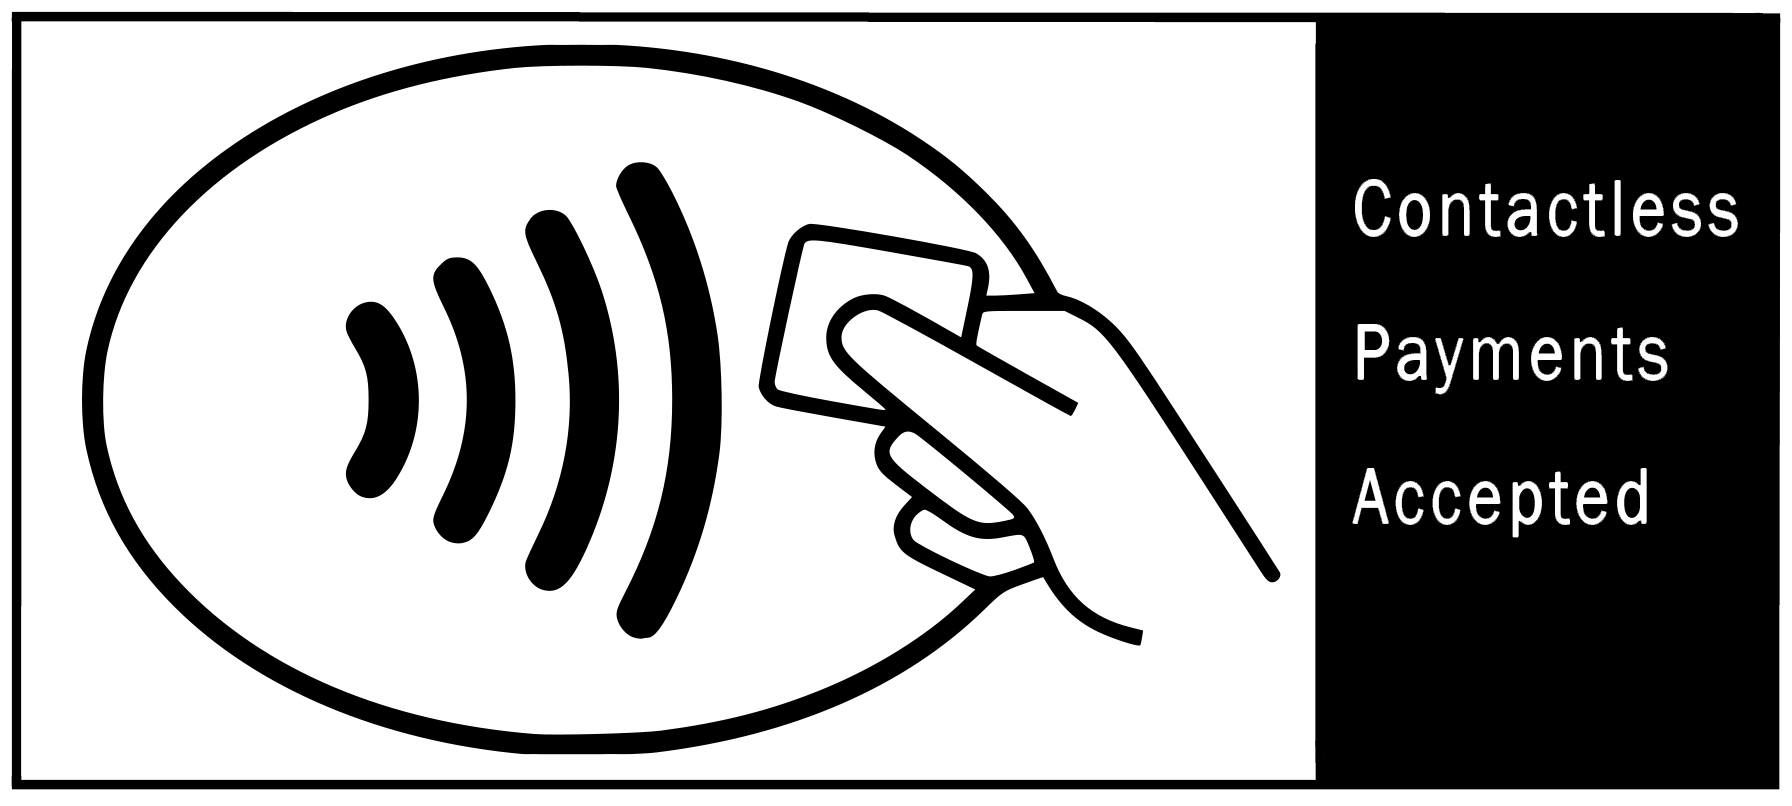 Contactless Payment Accepted Sticker